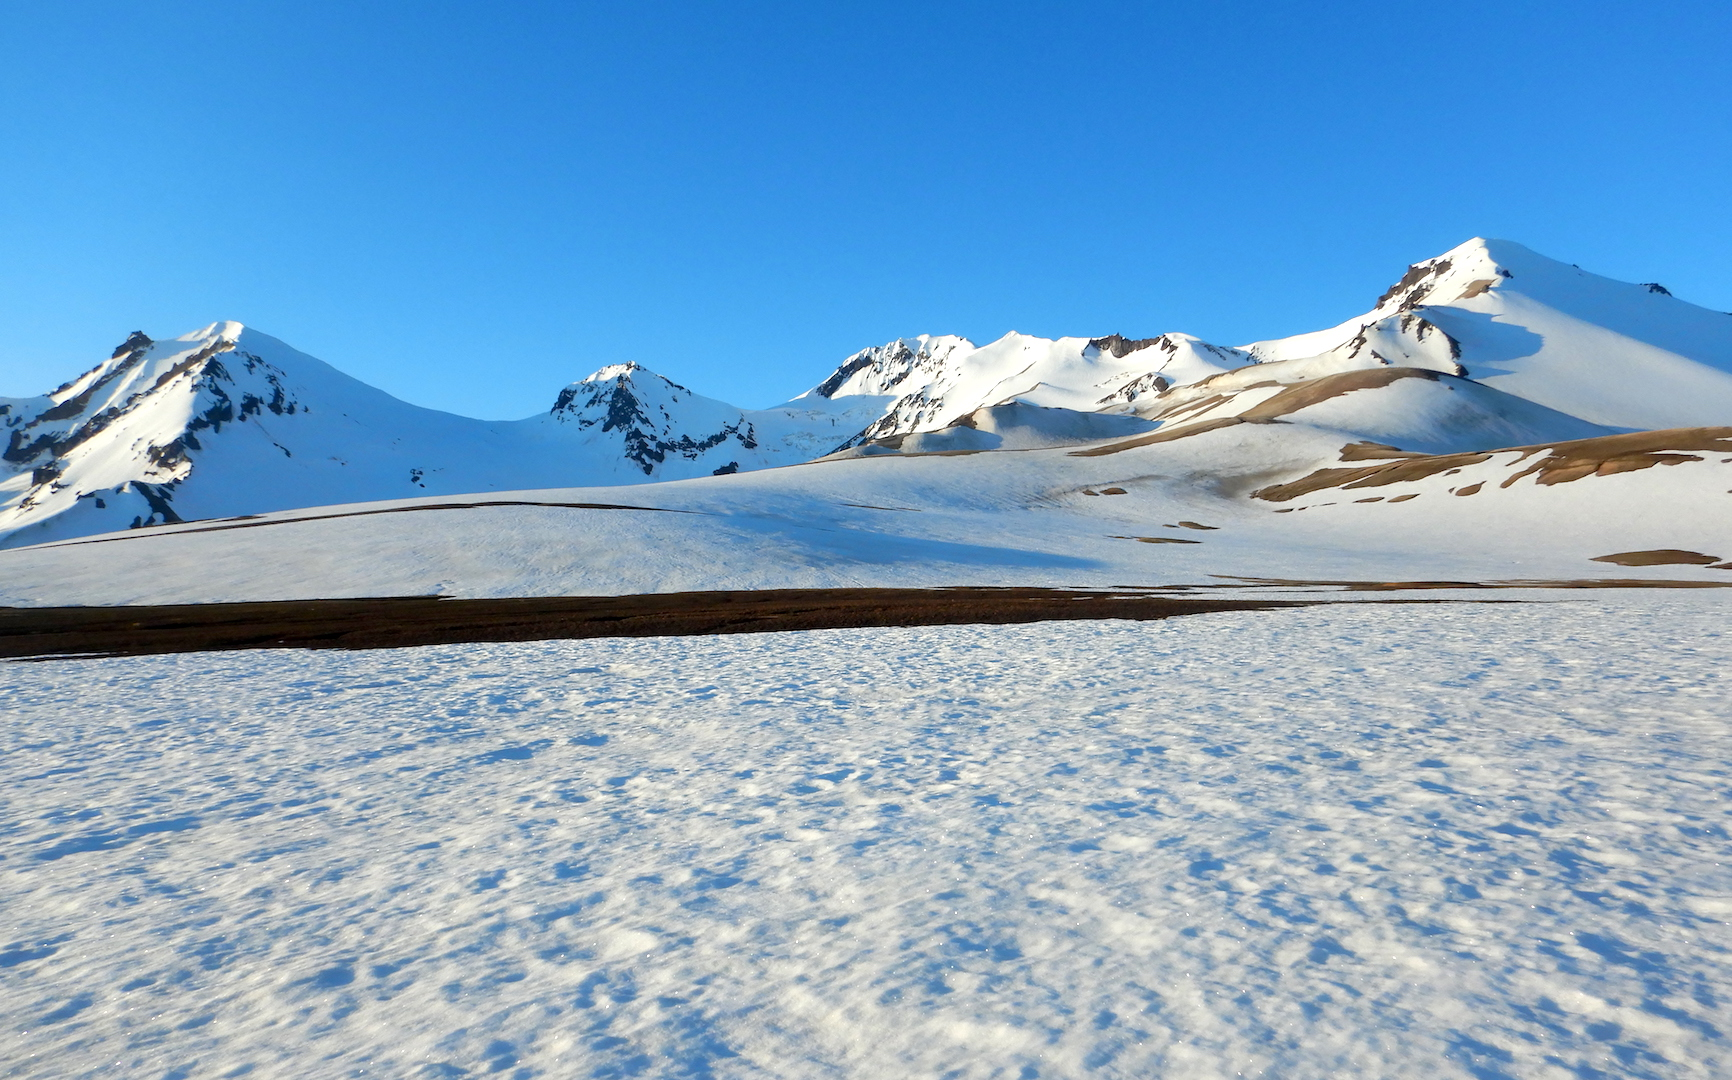 view of snowfields and mountain peaks